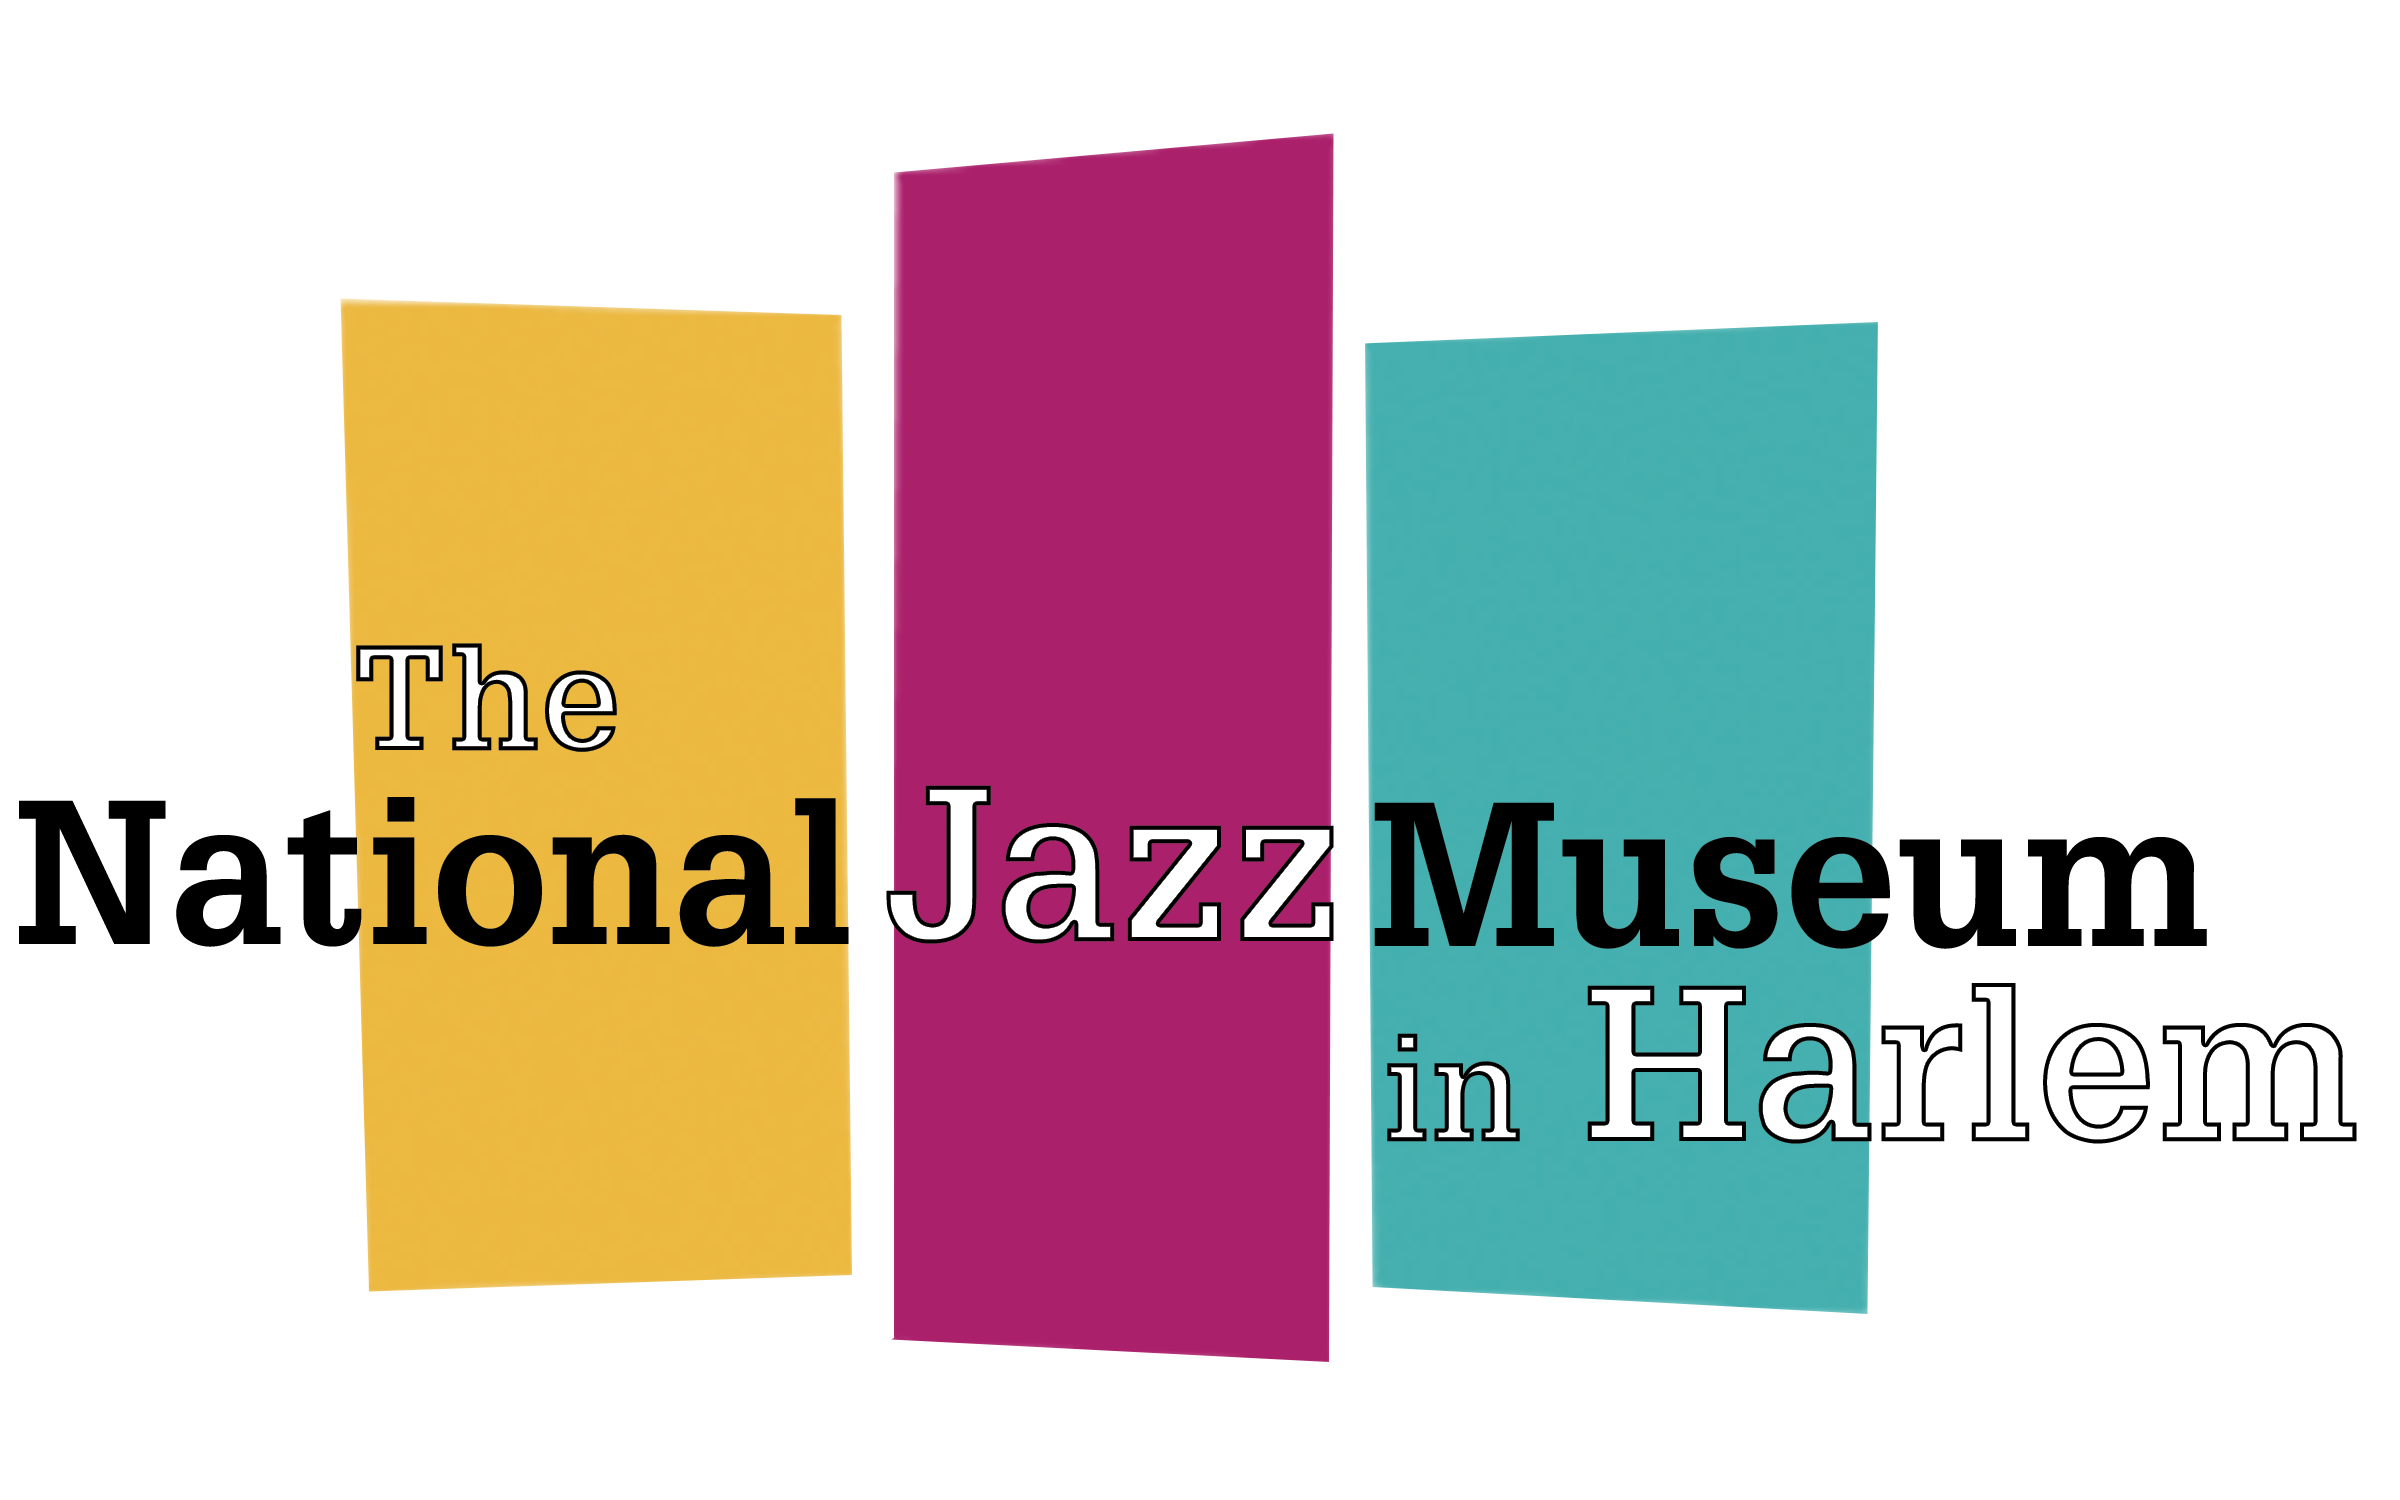 Audio Install and Recordings for The National Jazz Museum in Harlem